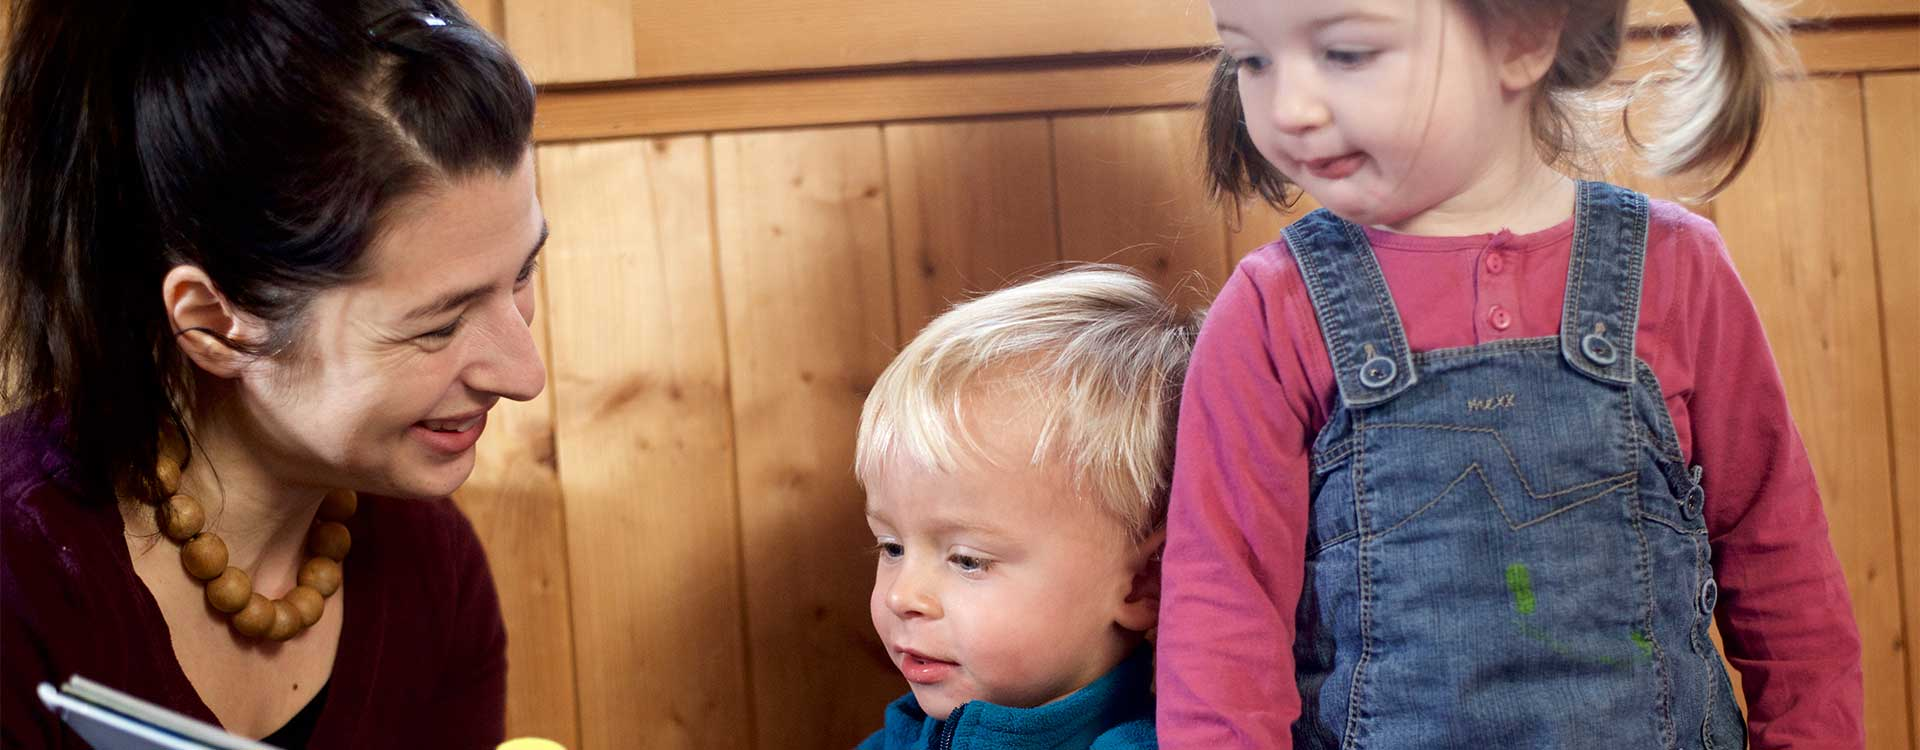 Kinderhotels mit Kinderbetreuung in Laax.